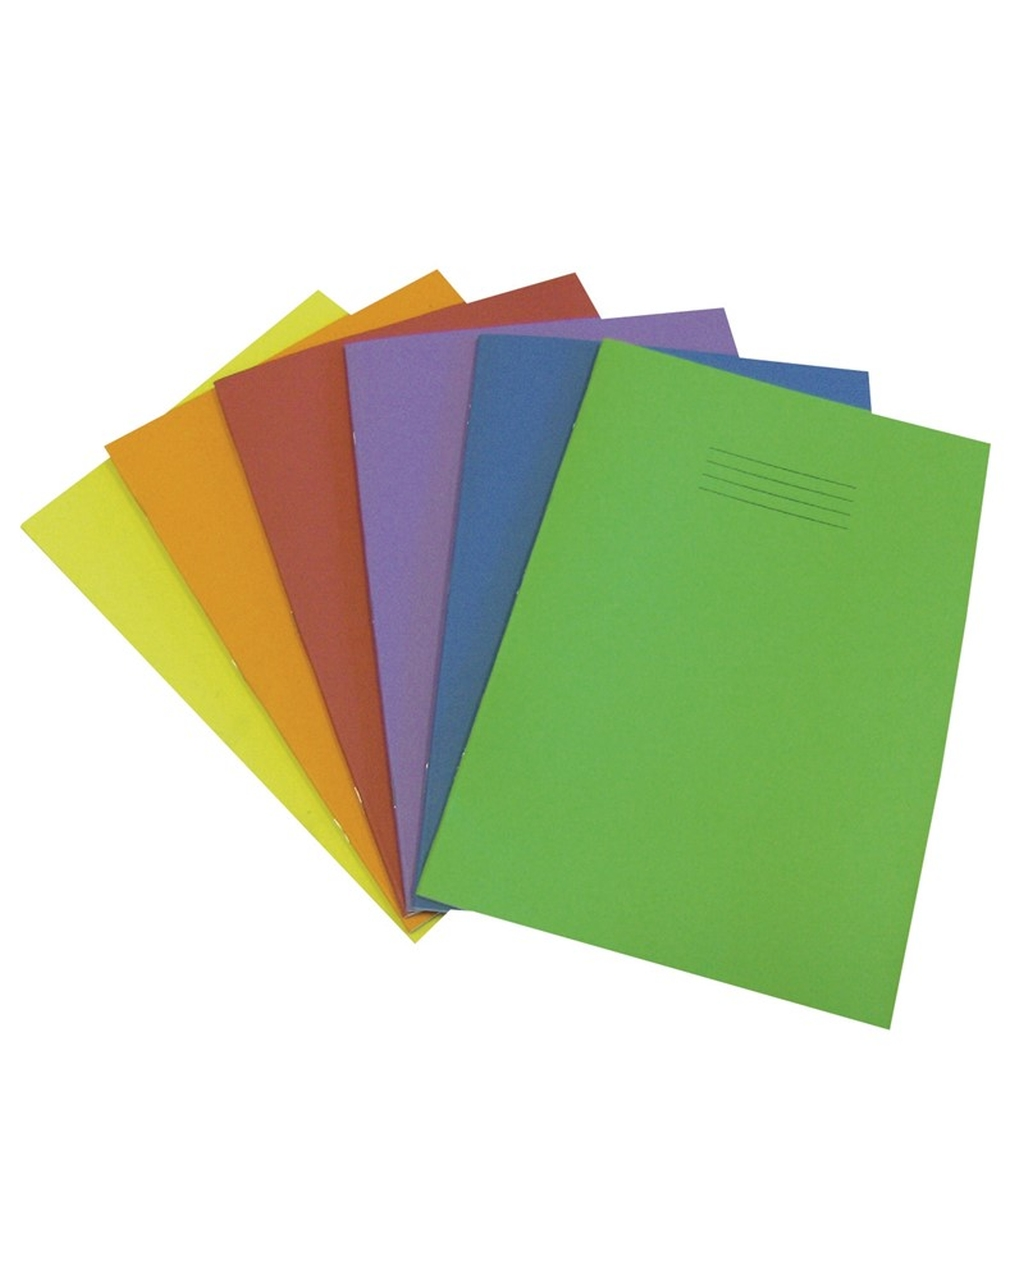 Exercise Book A4 (297 x 210mm) Light Green Cover 10mm Squares 64 Pages